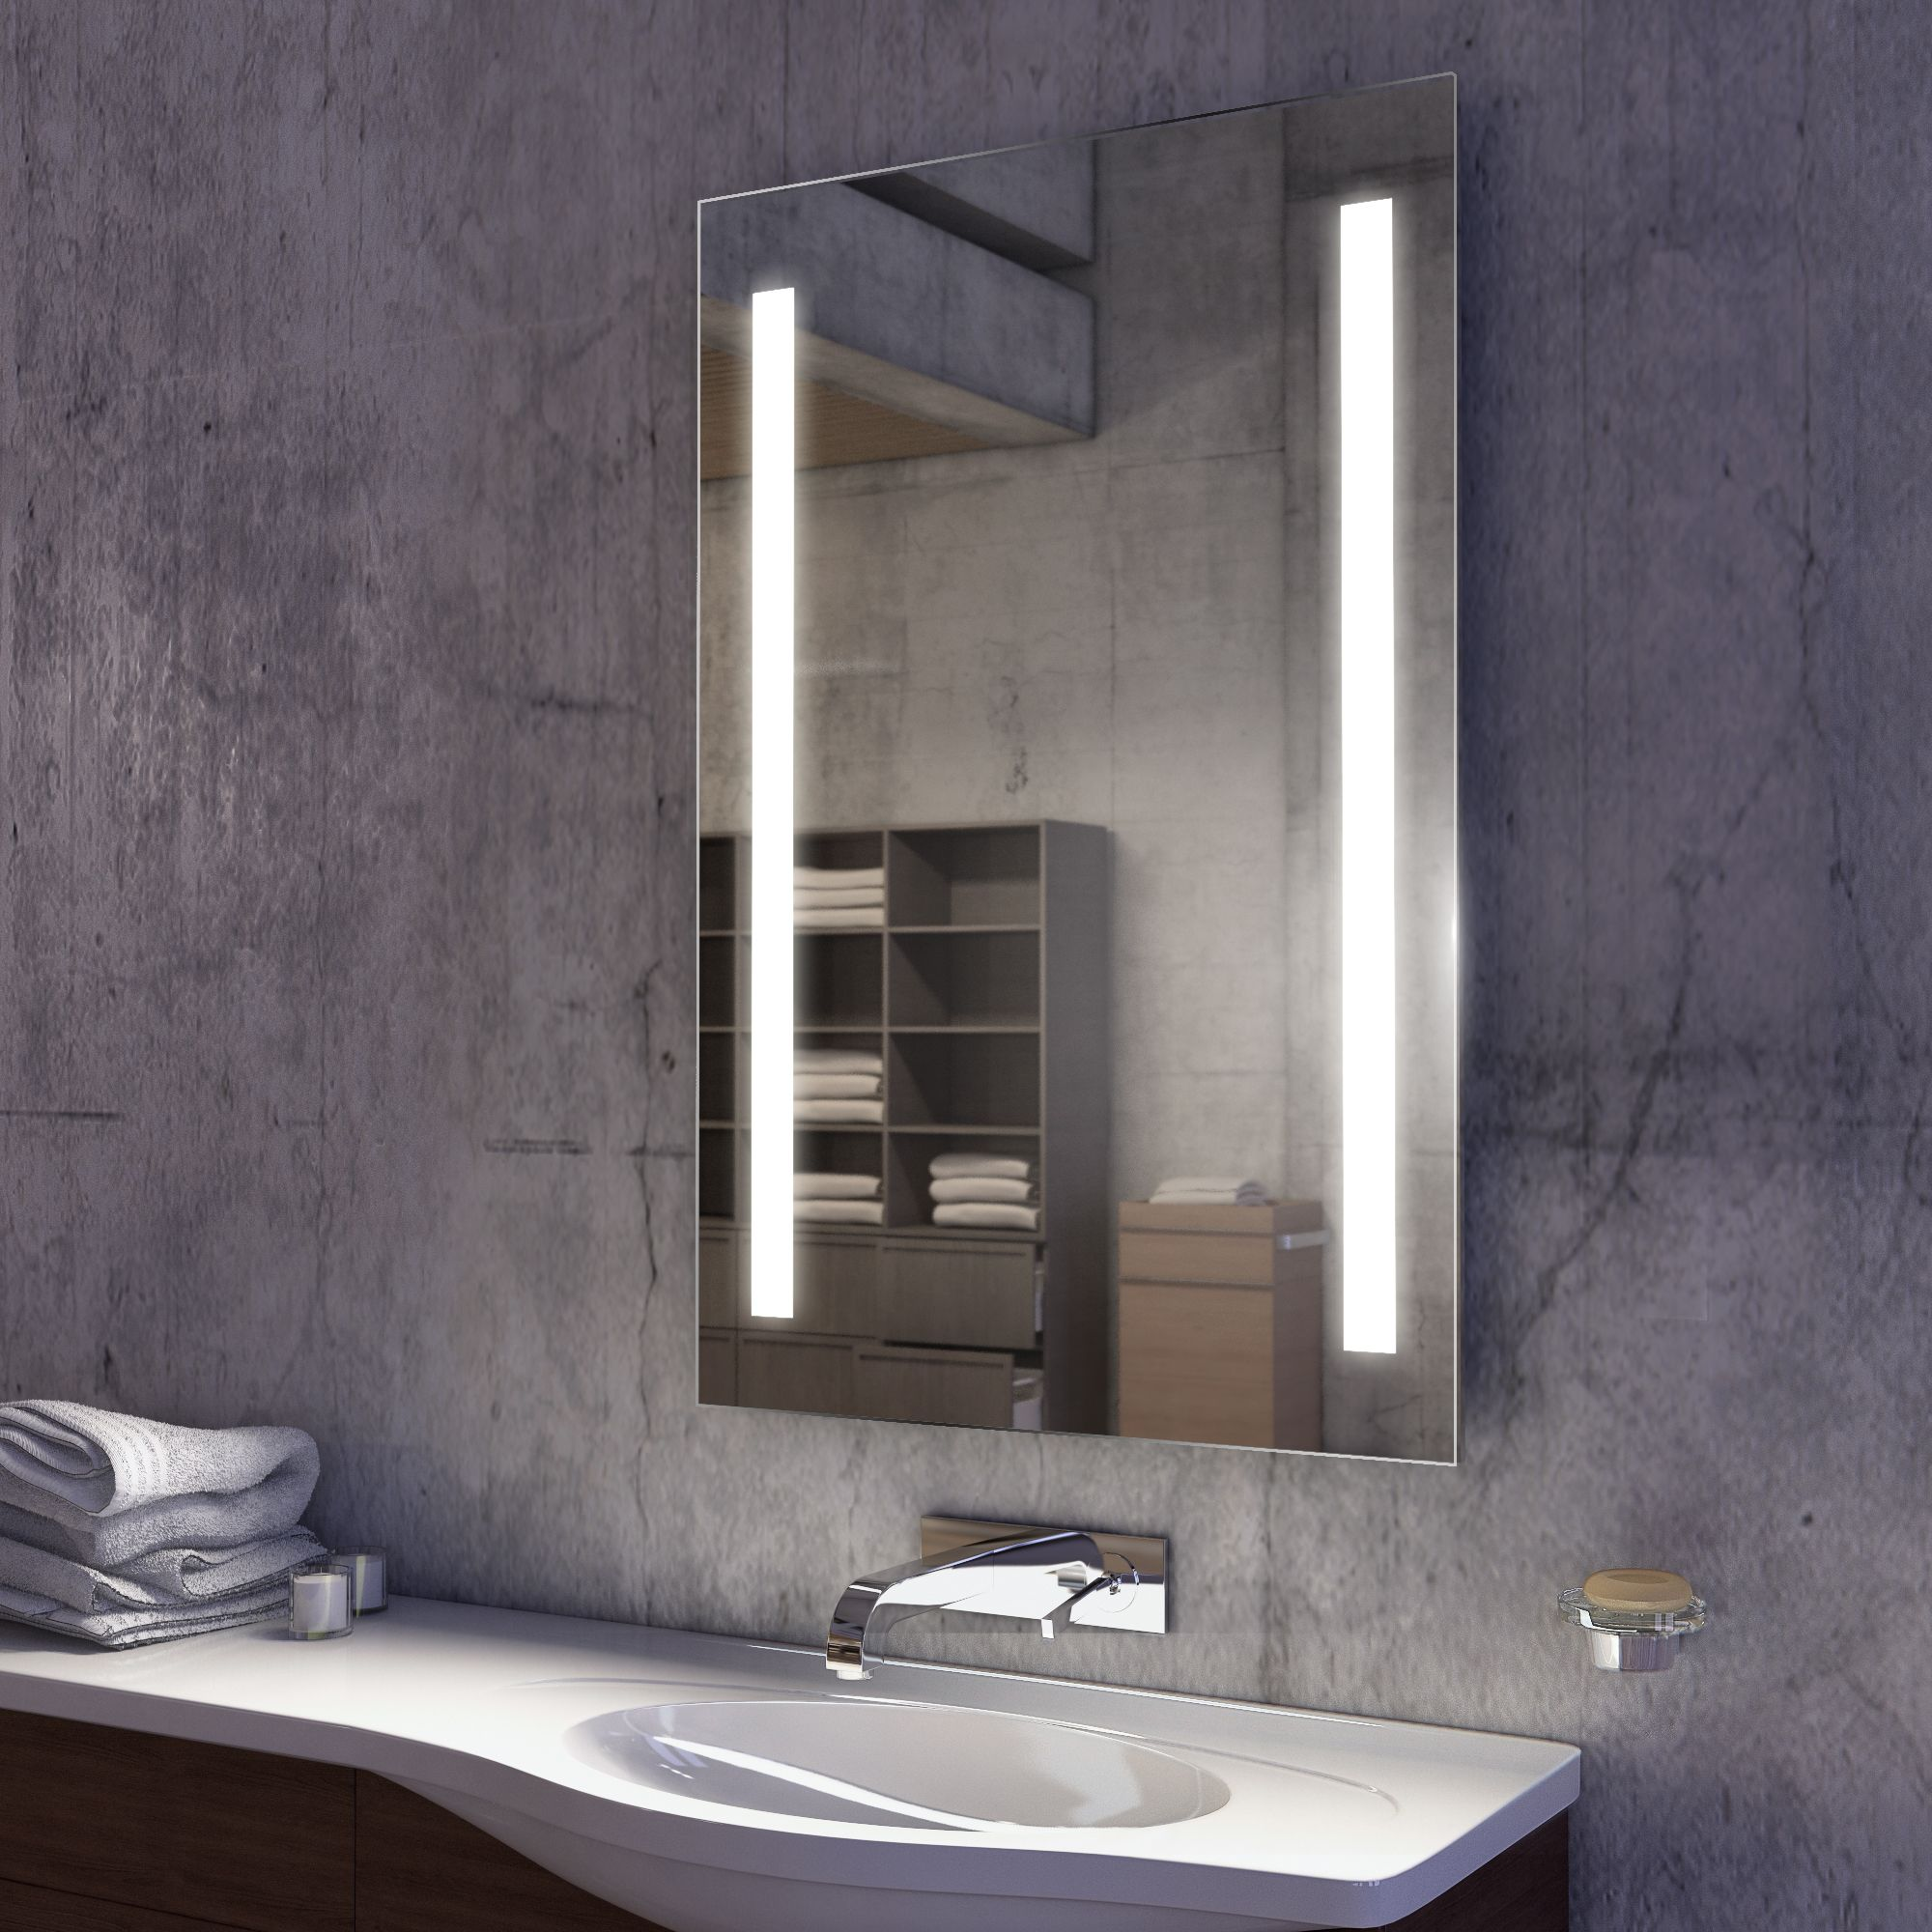 with cabinet attractive atom cabinets illuminated designer mirror homey inspiration bathroom led ideas light lights